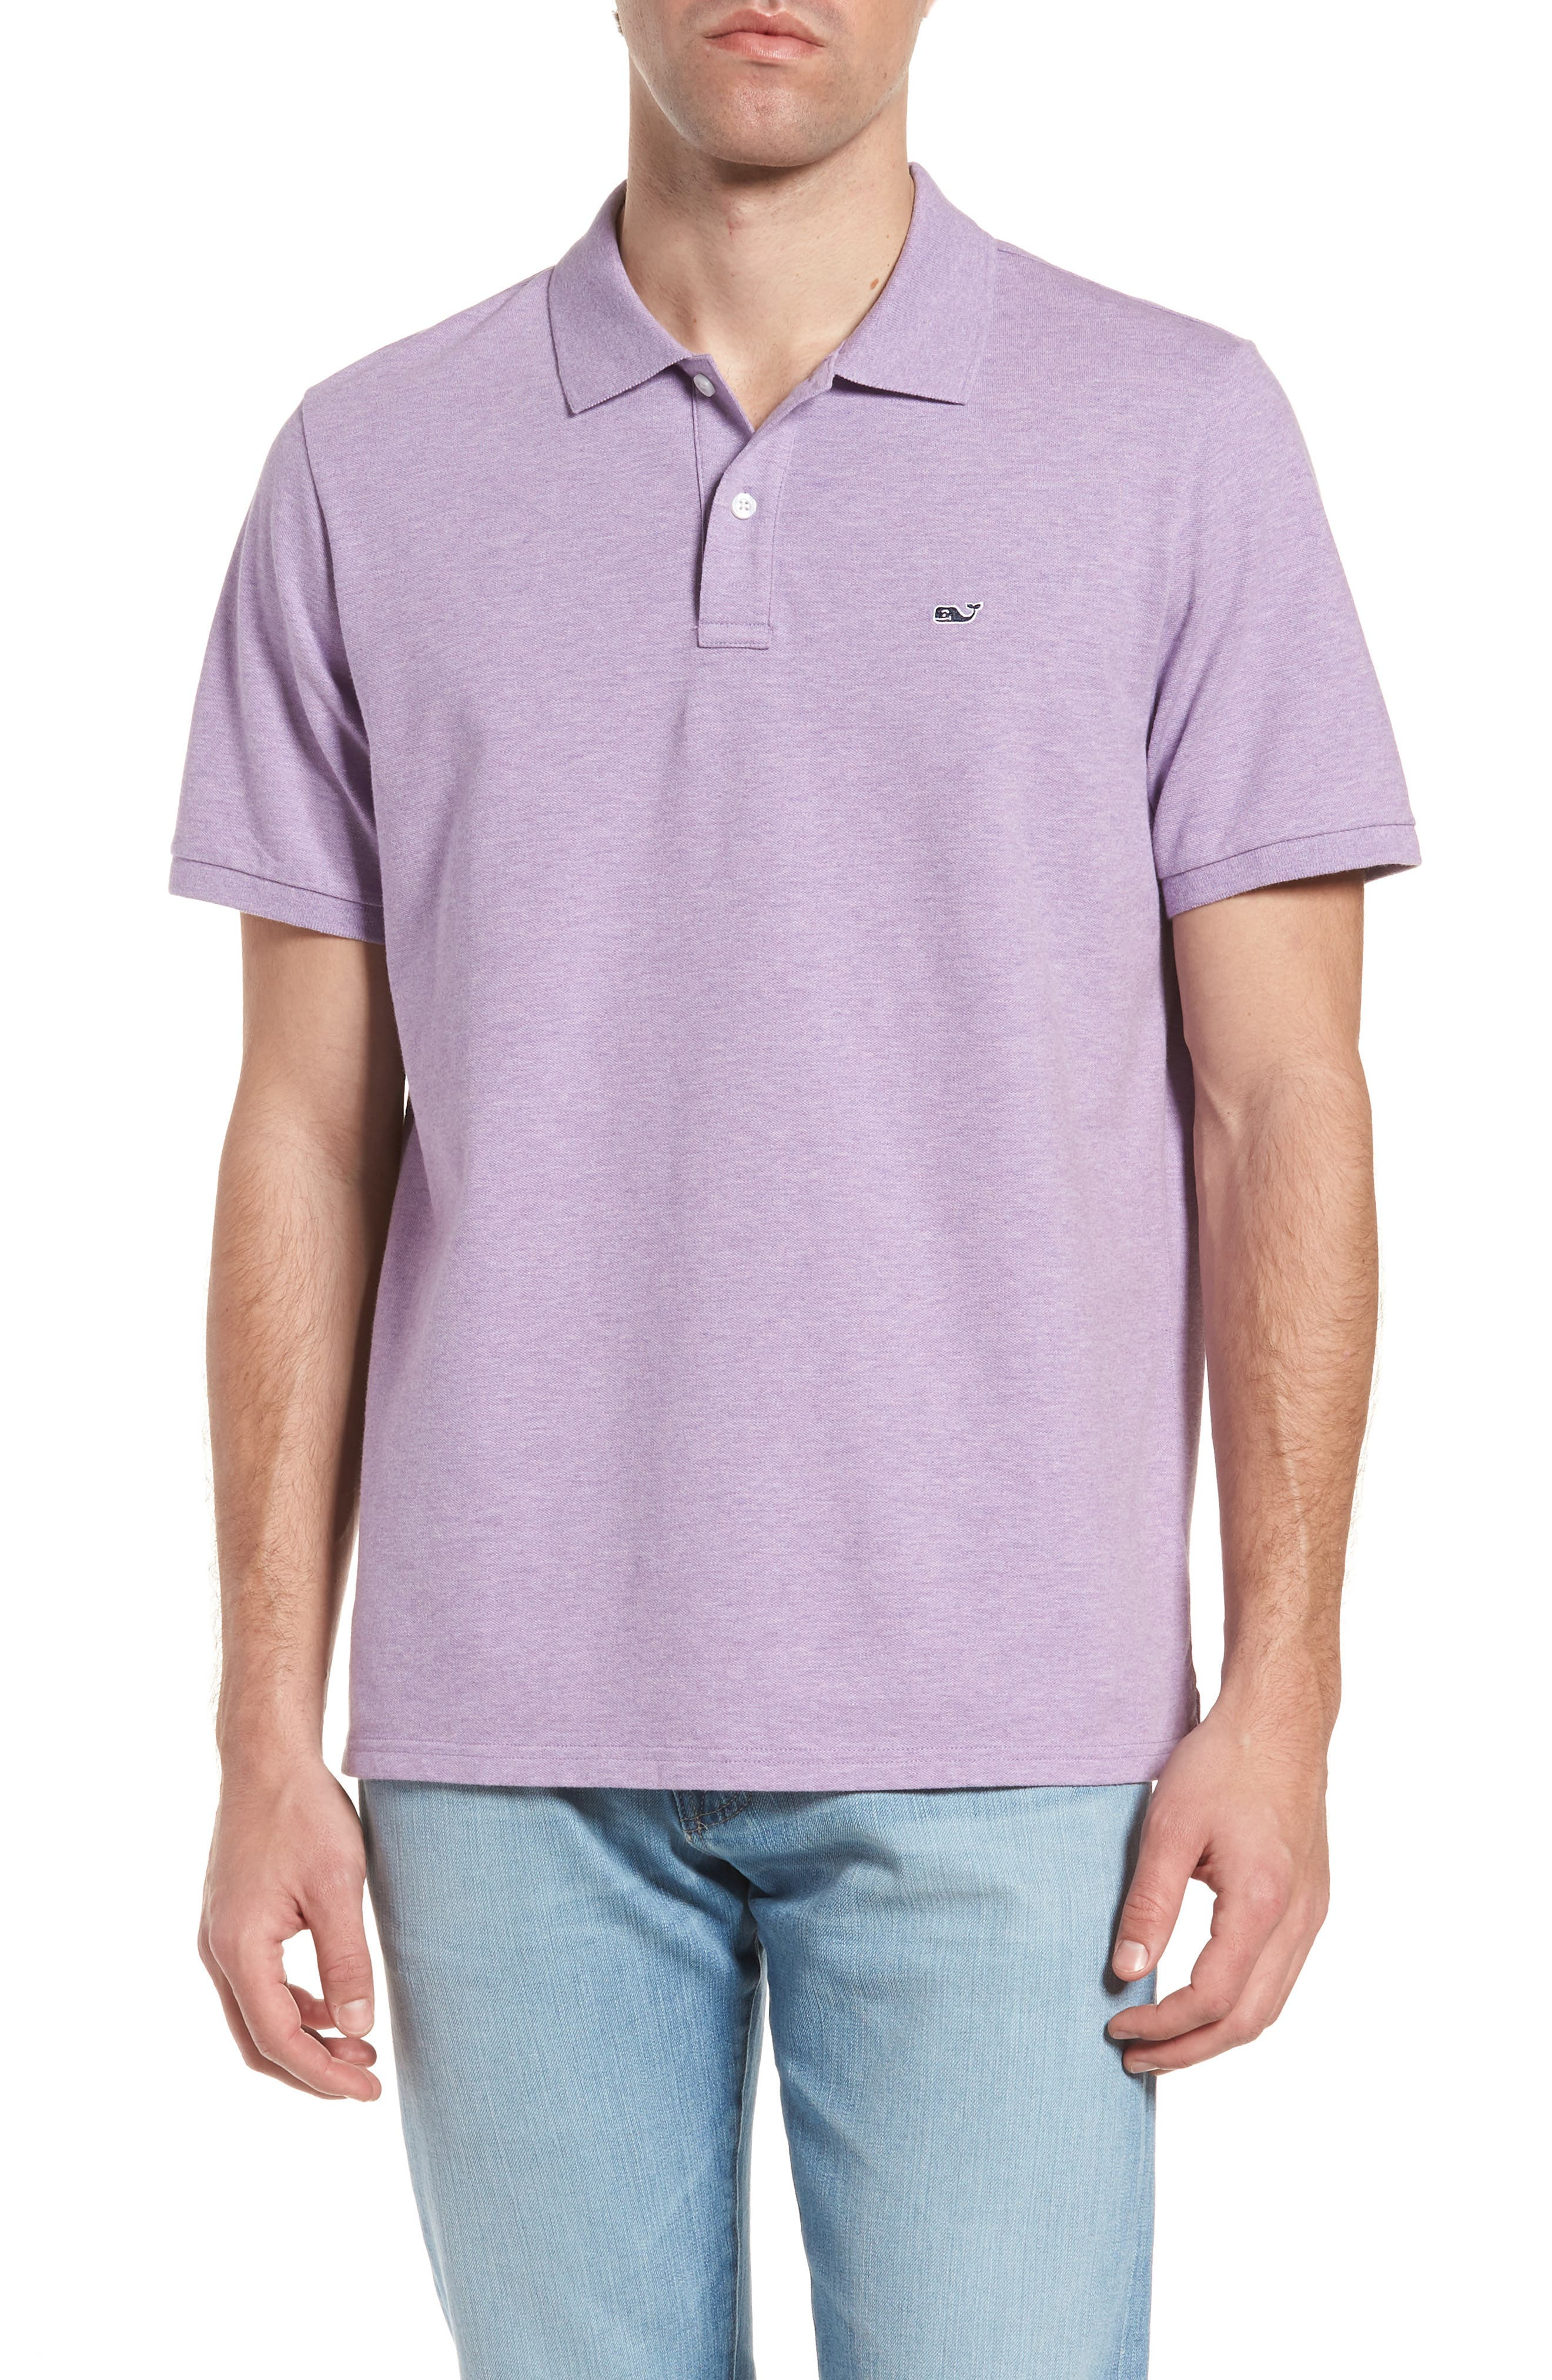 vineyard vines Regular Fit Piqué Polo